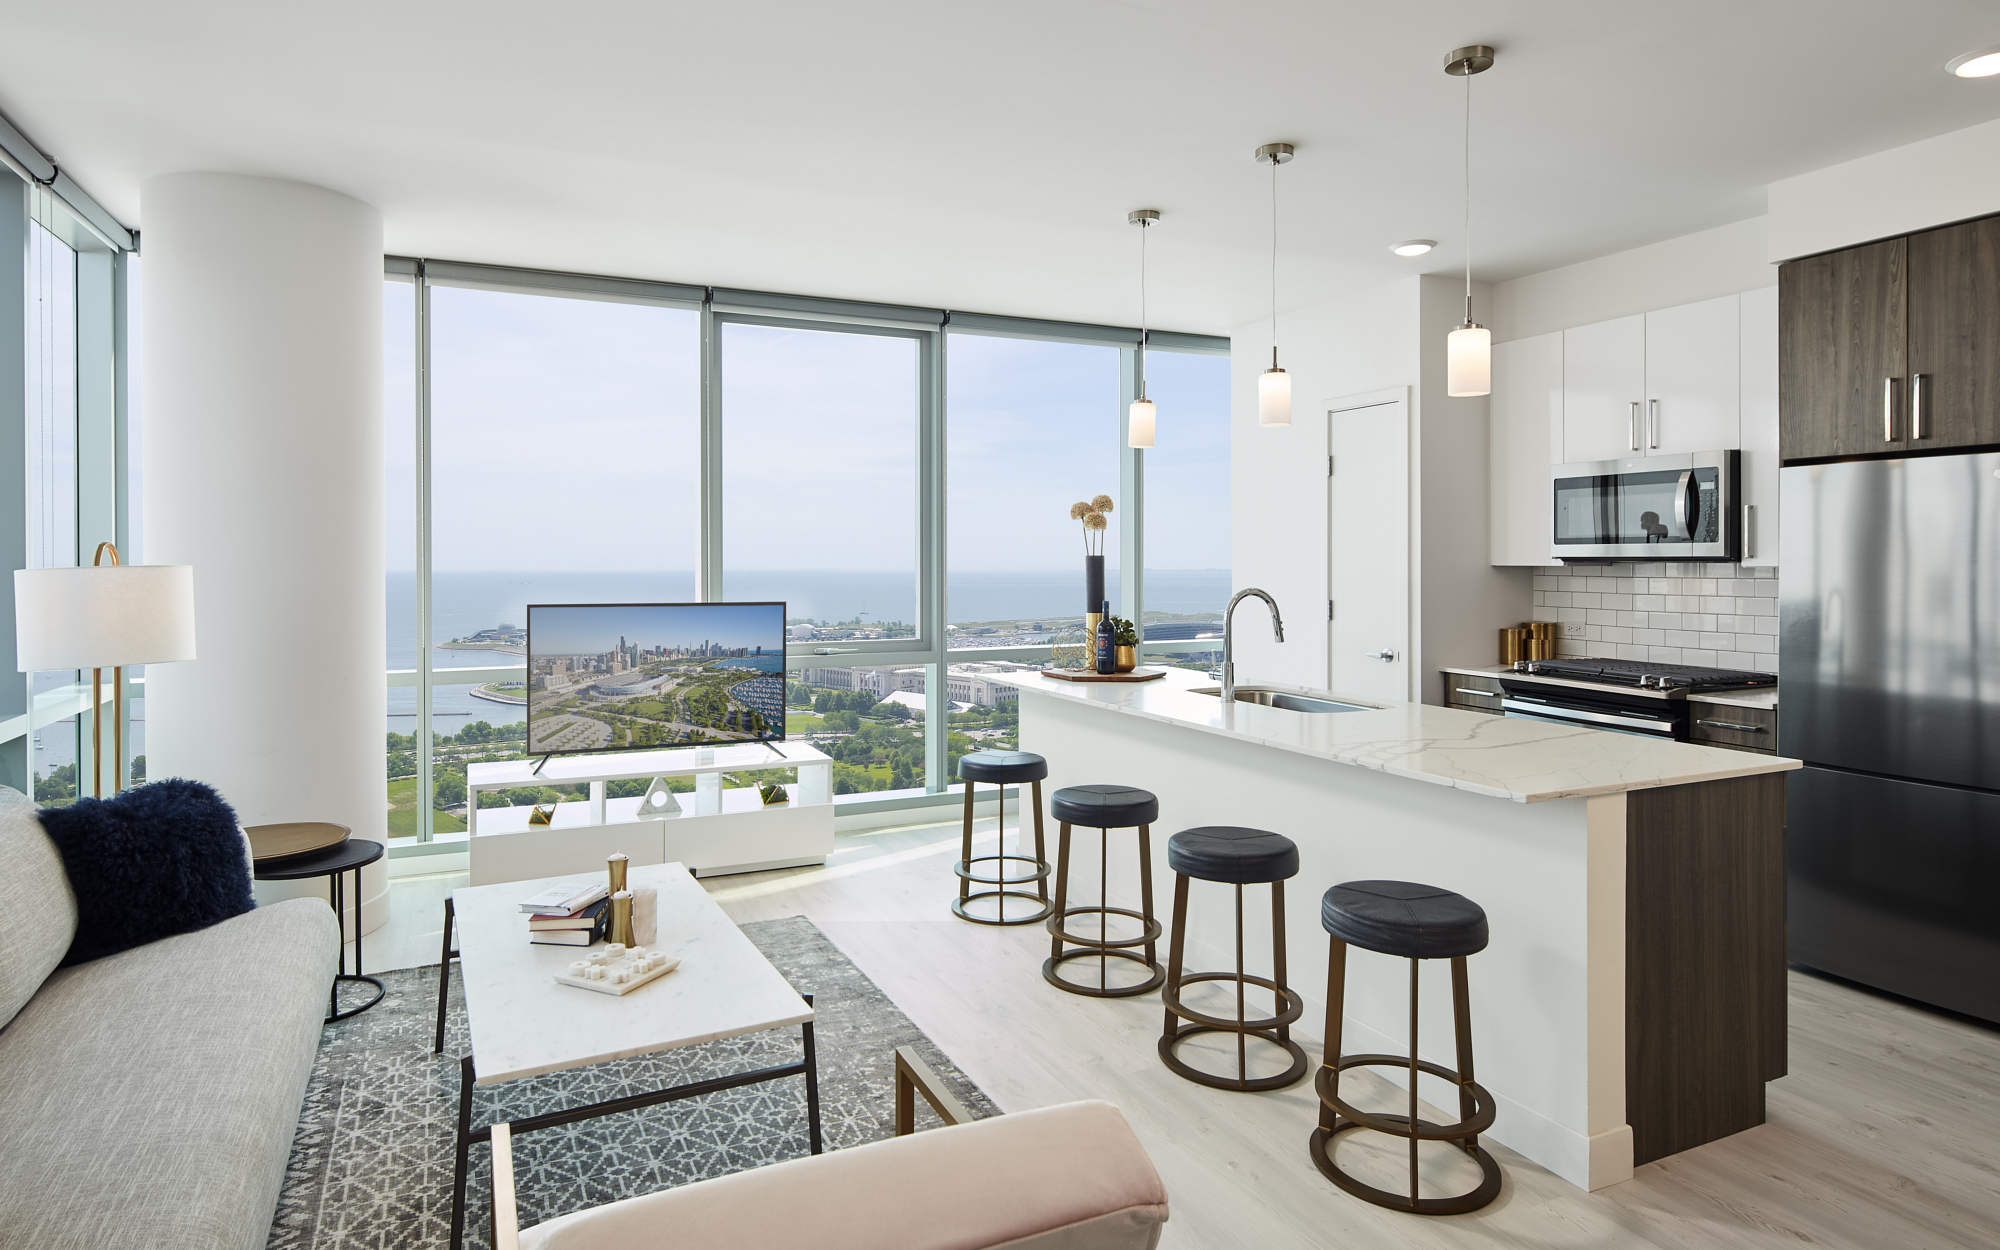 Essex interior kitchen and living room view